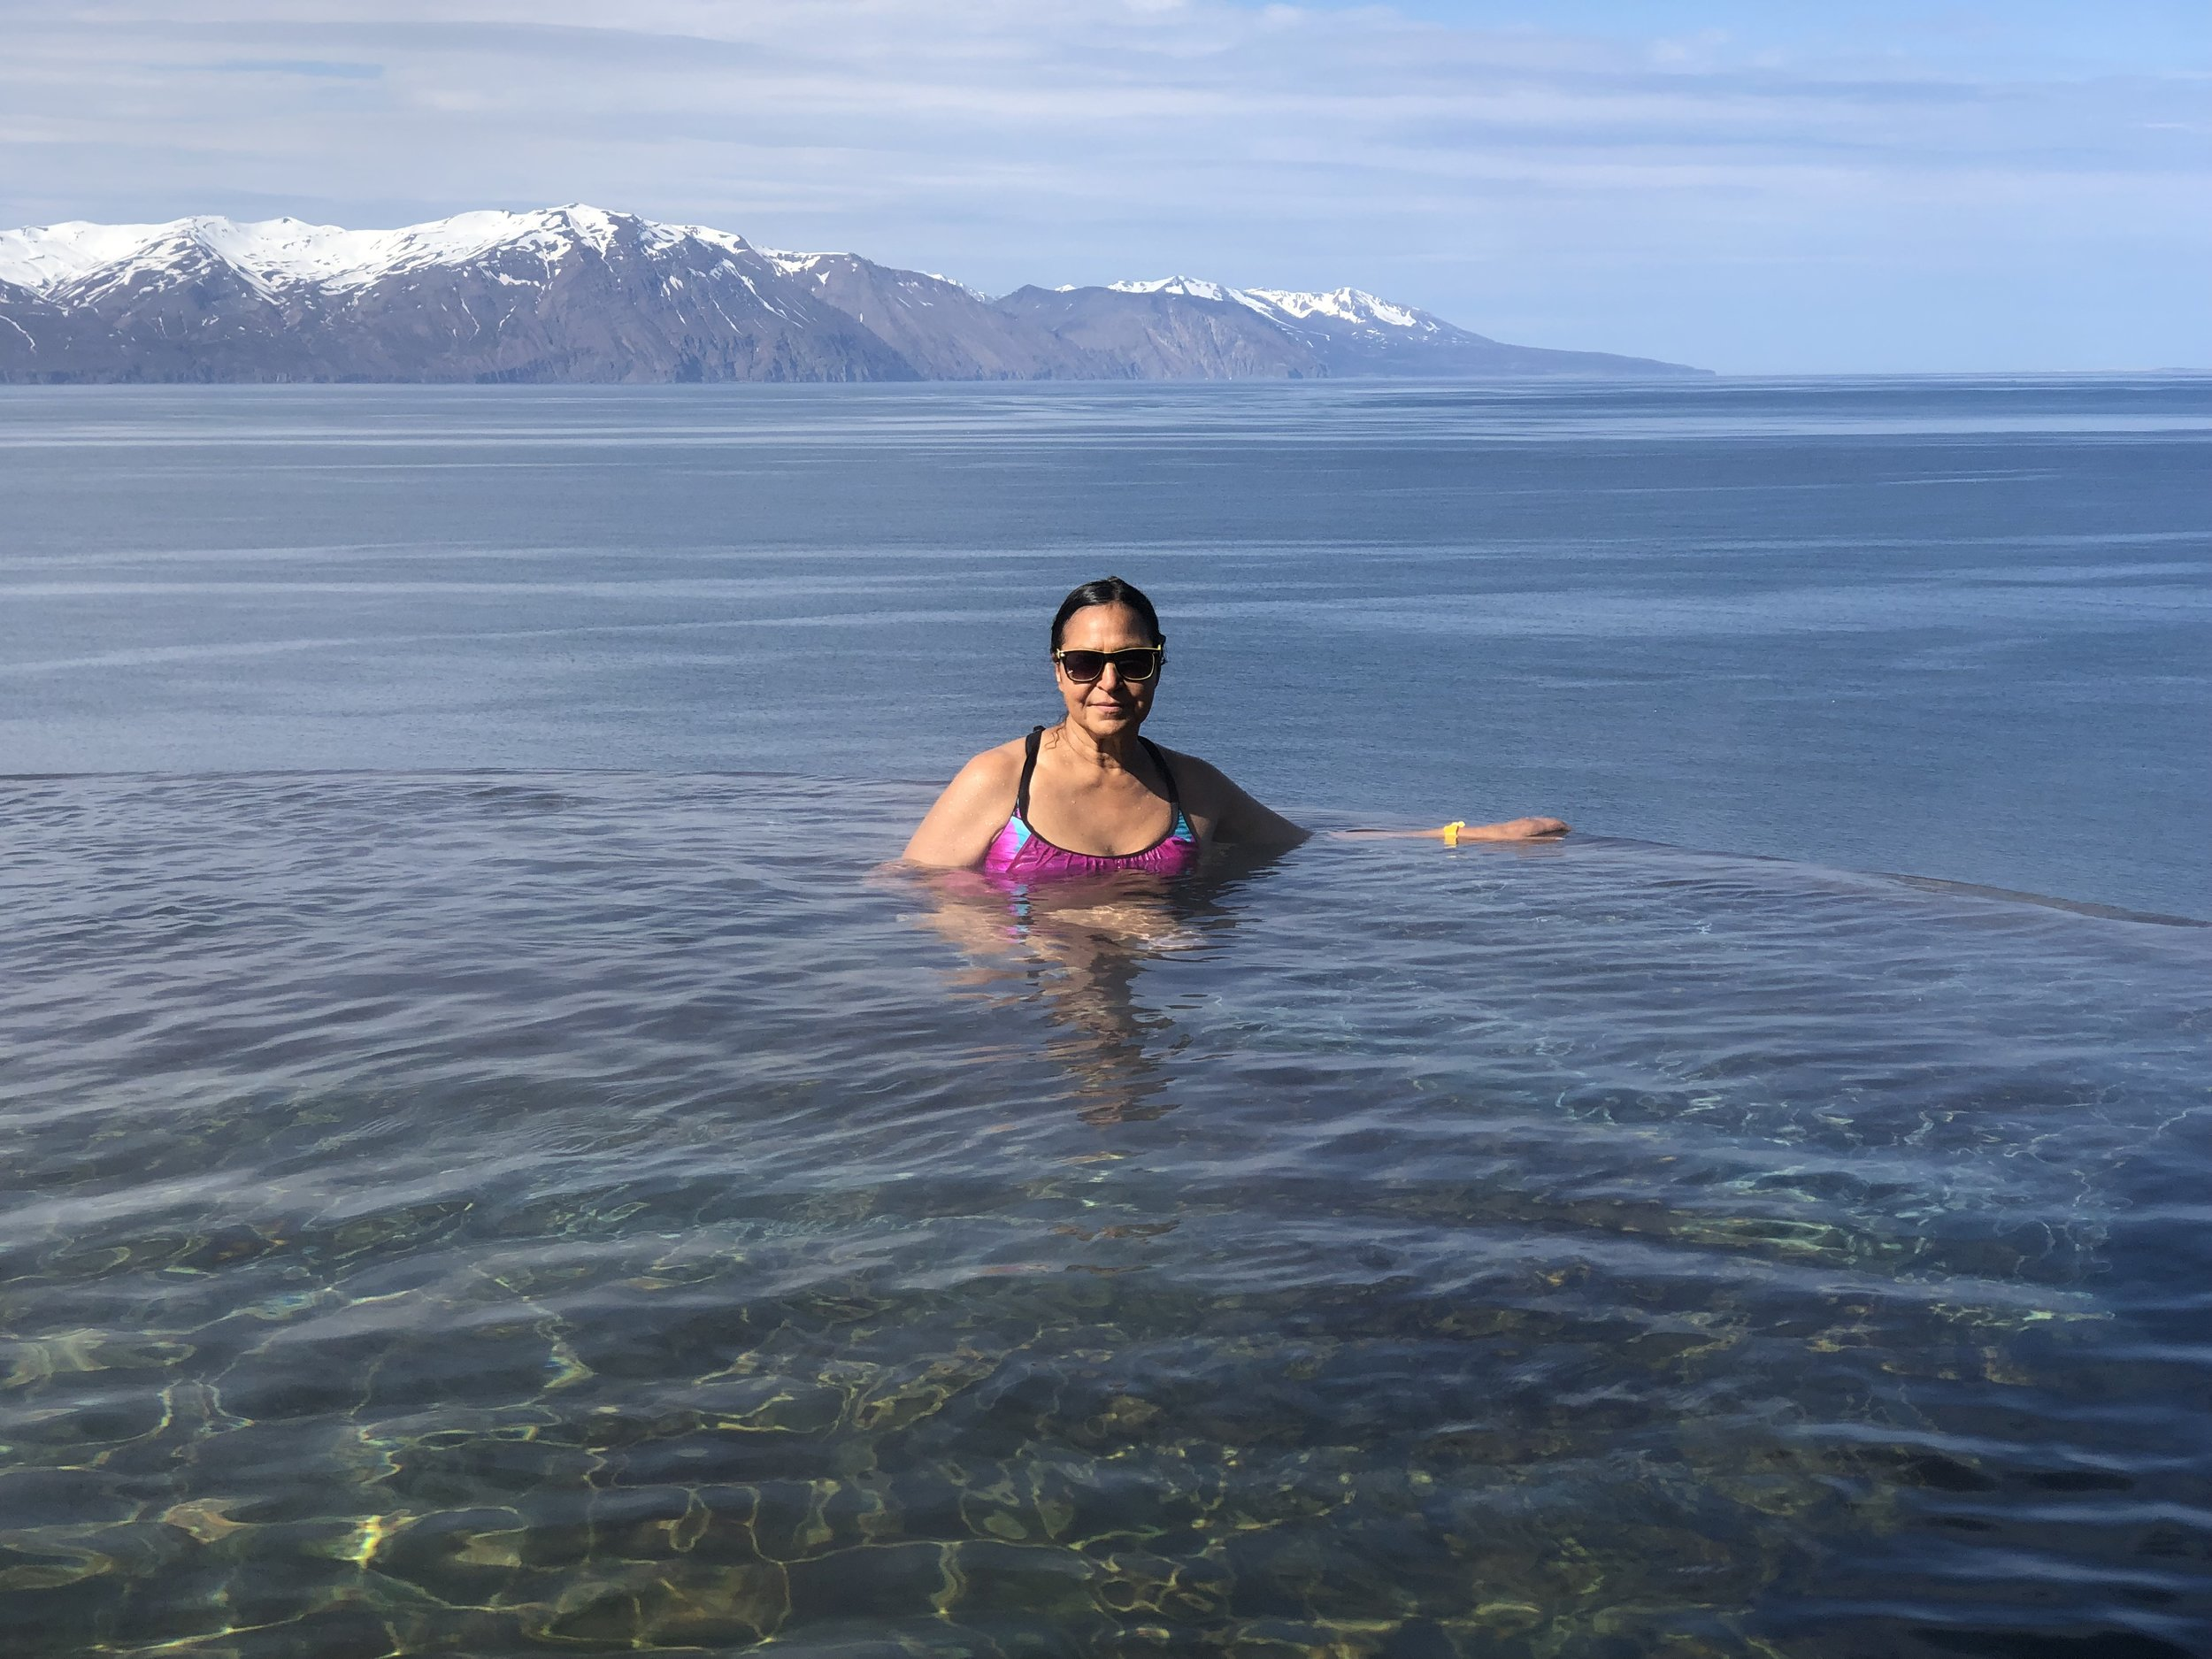 The negative edge hot pool in Husavik gives the impression Alena is swimming in the frigid Arctic Ocean.